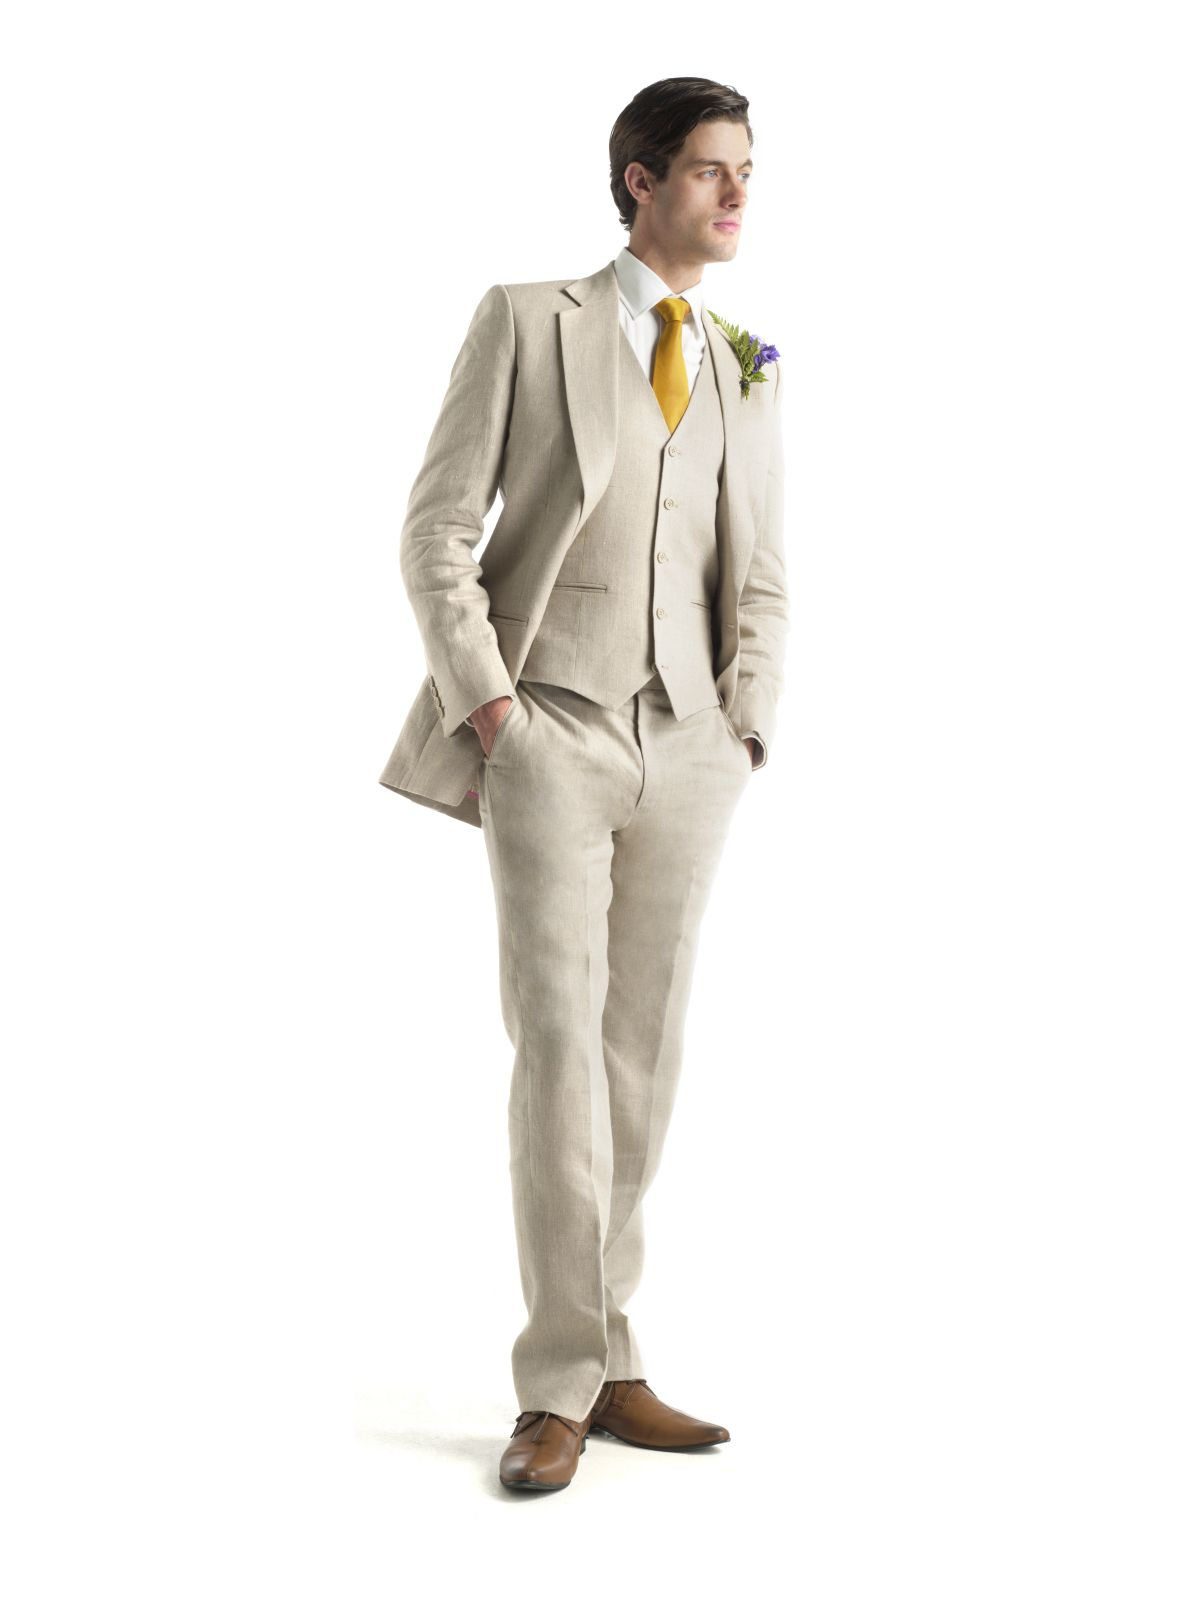 Linen Three Piece From A Suit That Fits | Linen suits | Pinterest ...